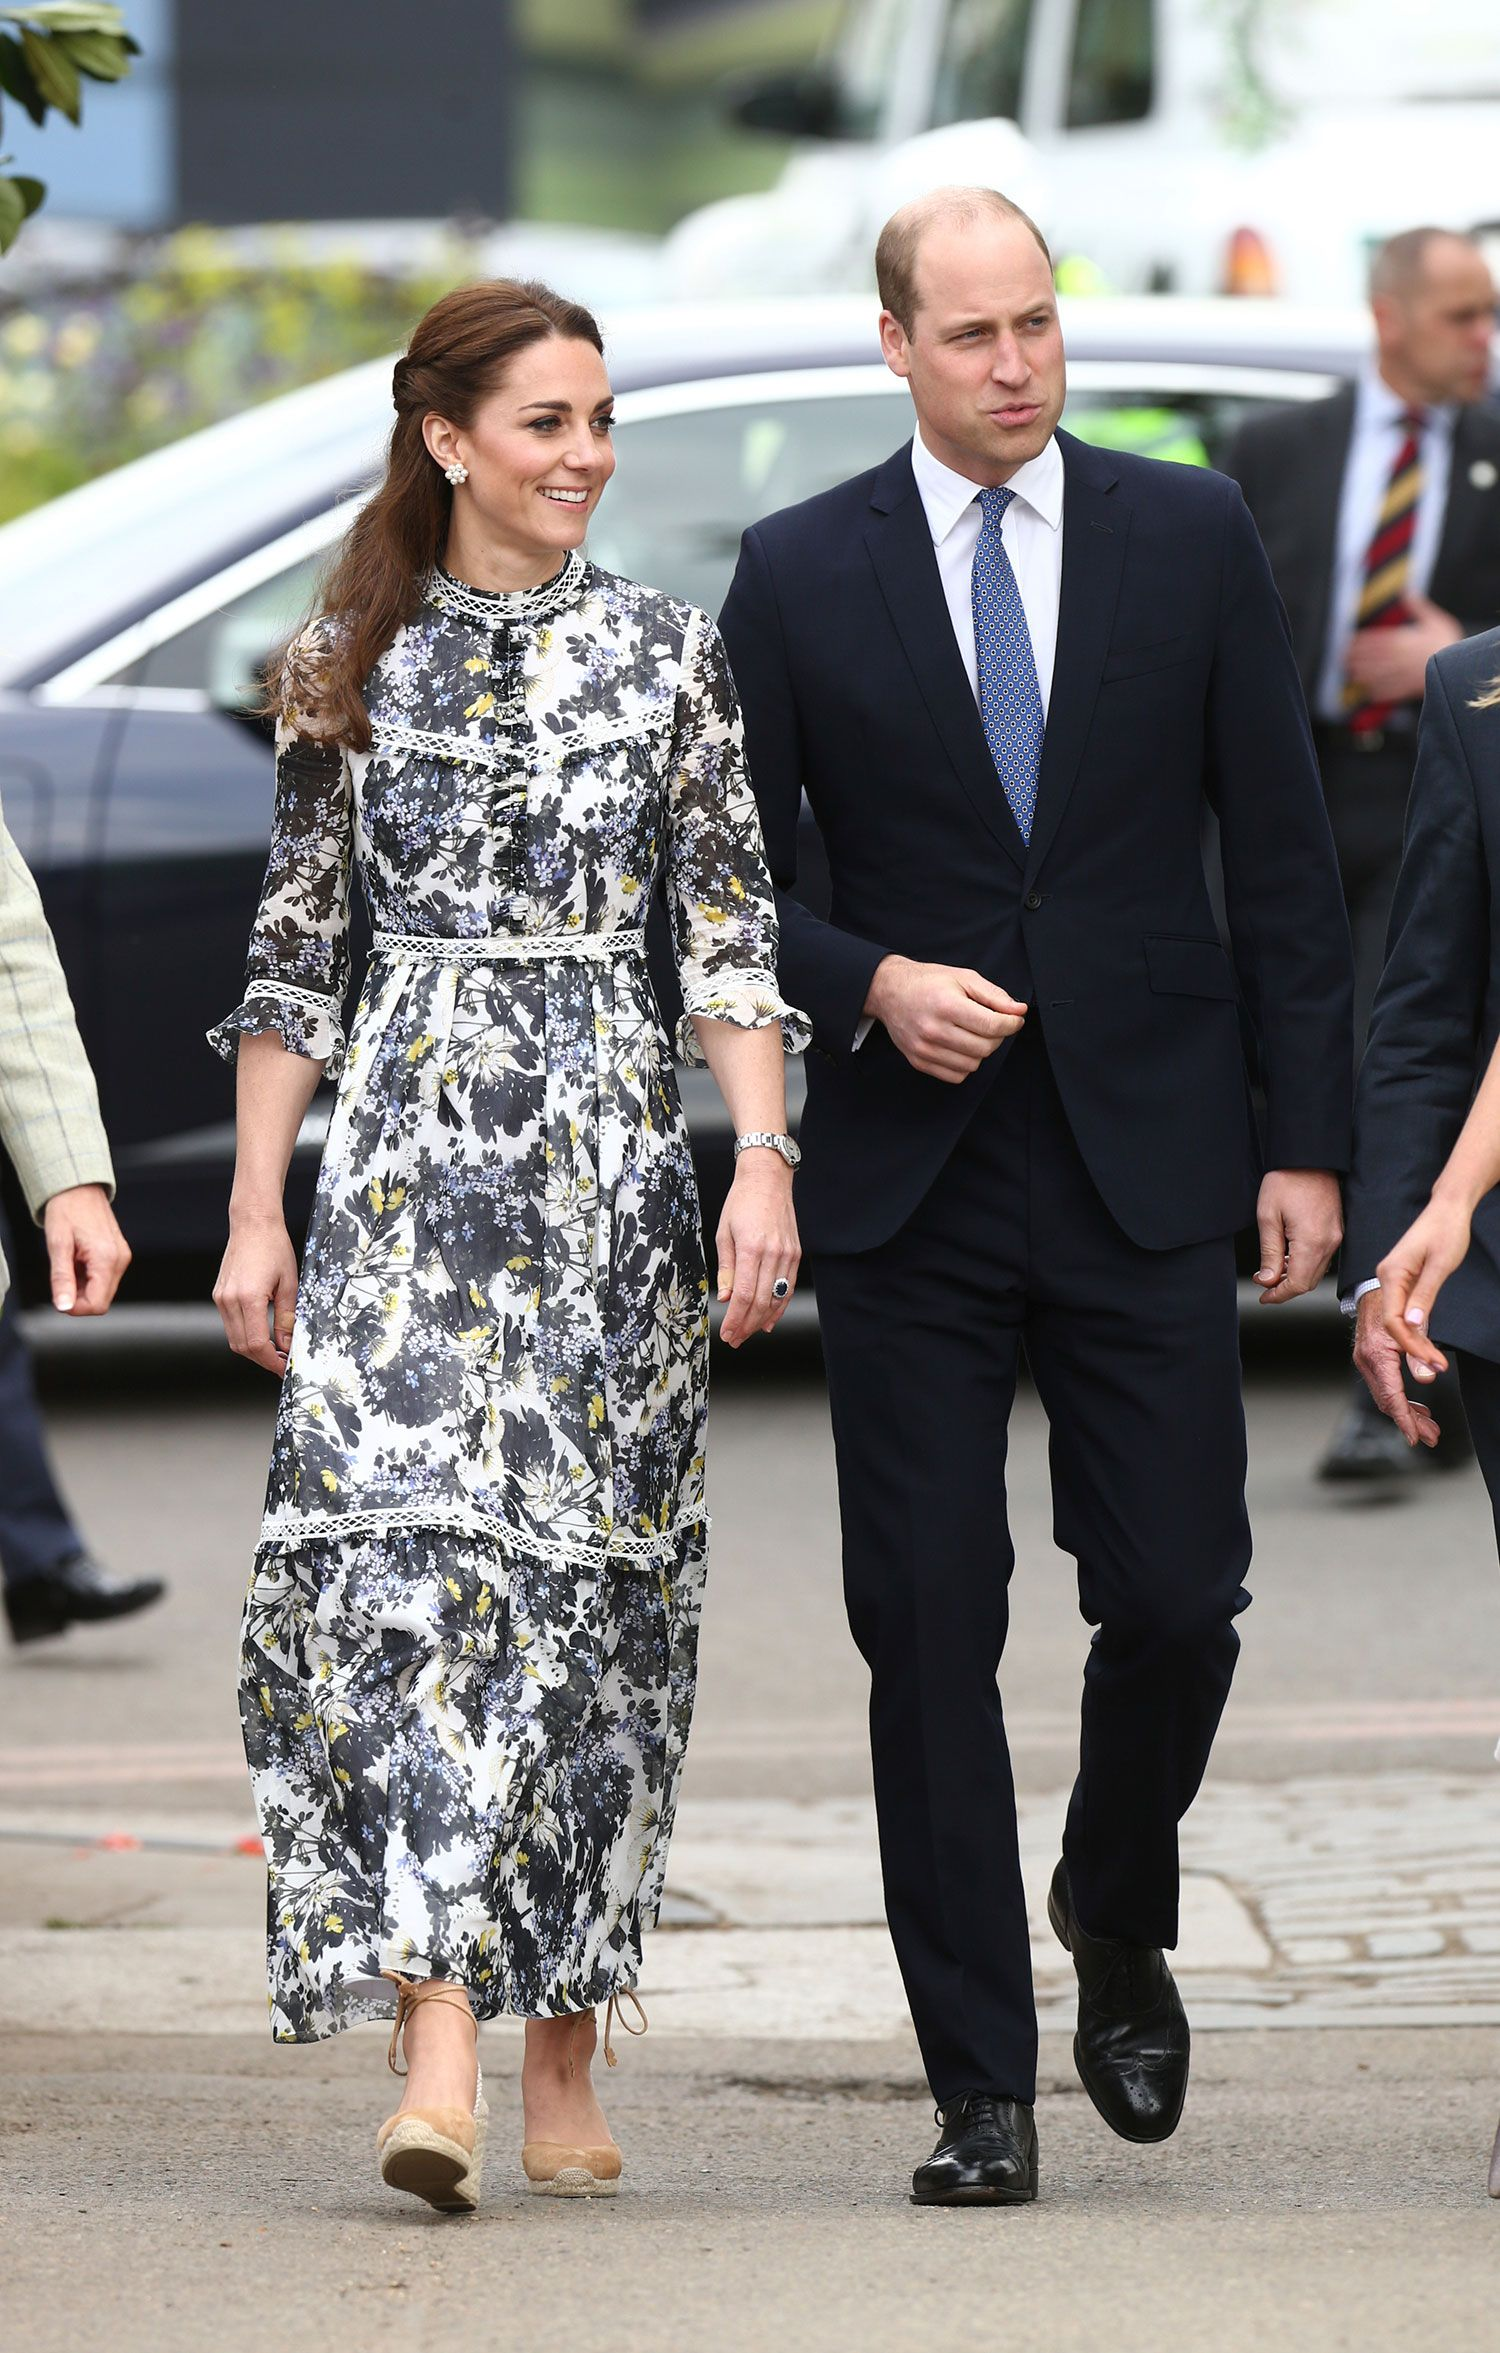 Kate Middleton Went Out in a Daenerys-Like Braided Hairstyle and Floral Erdem Dress for the Queen's Chelsea Flower Show Visit